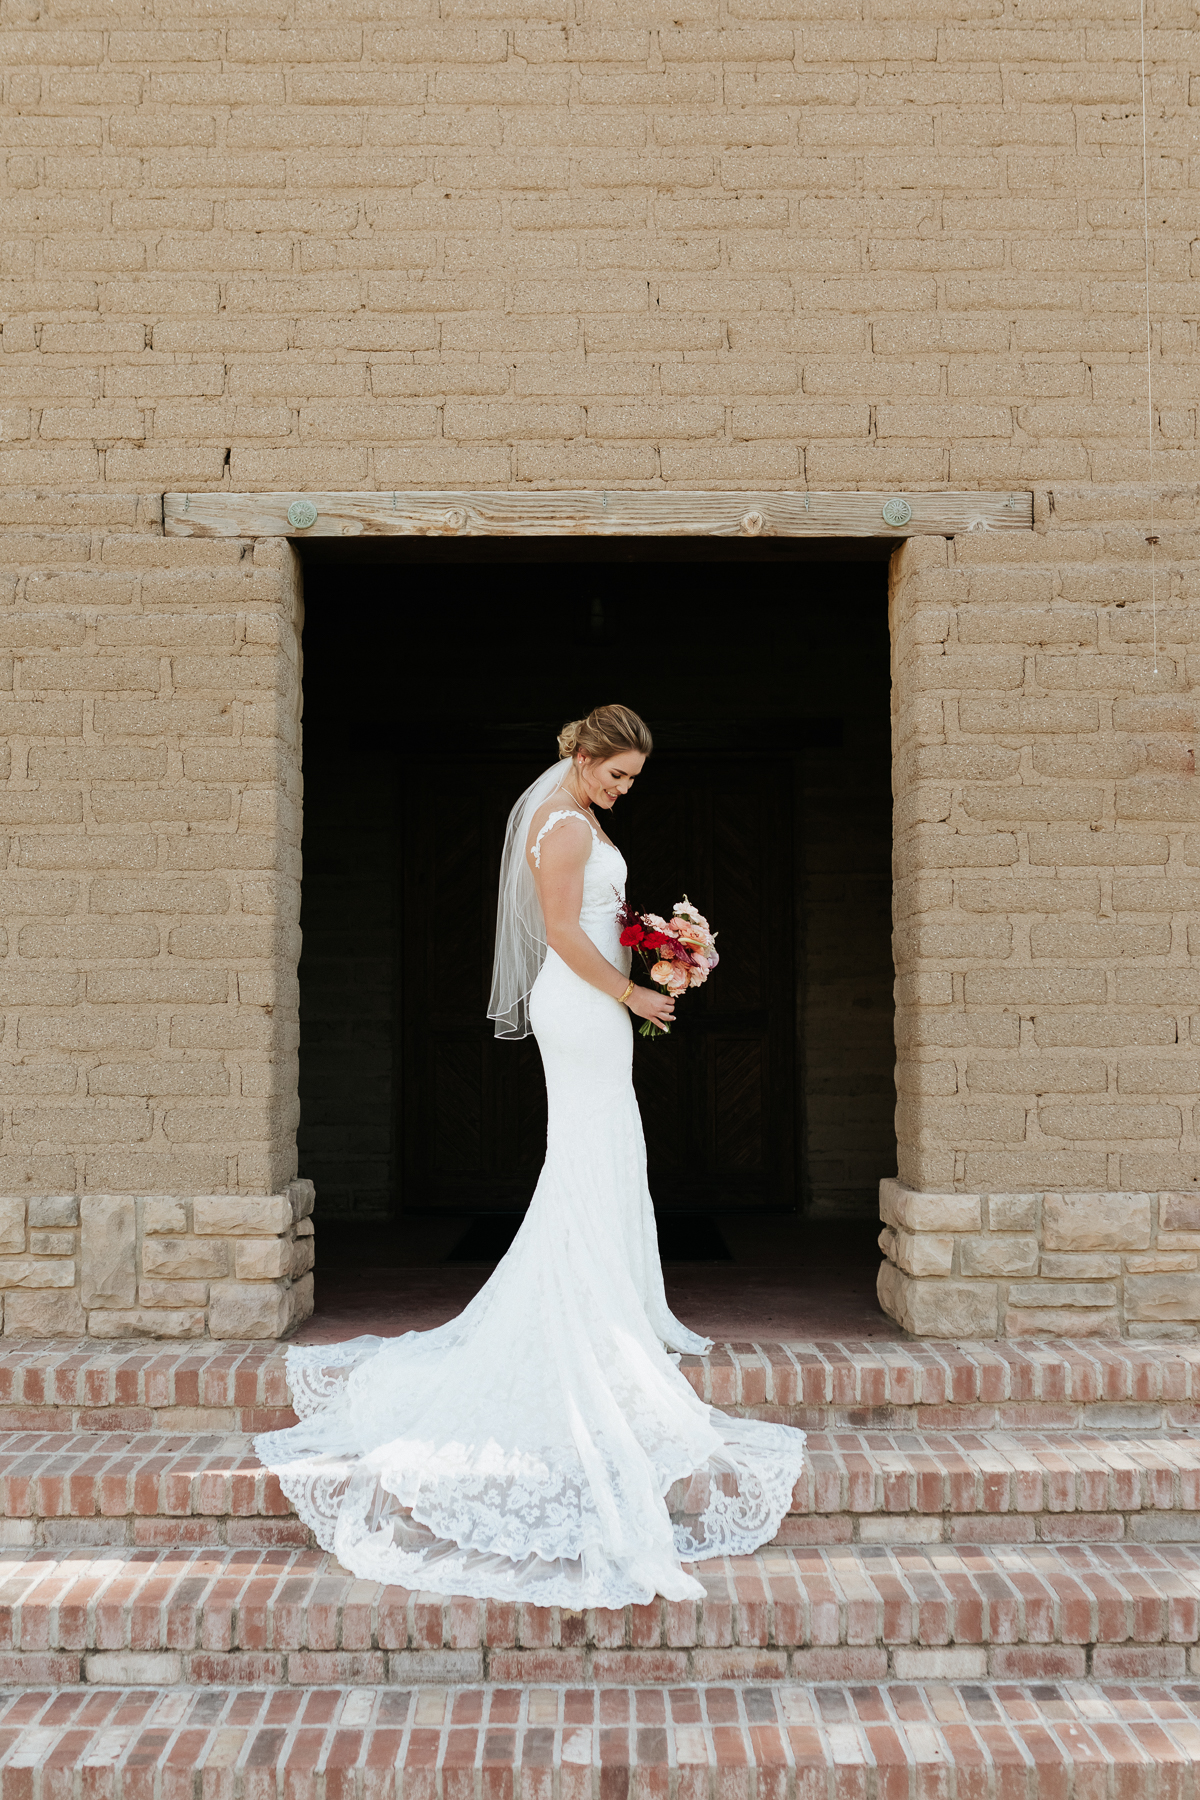 Megan Claire Photography | Arizona Elopement and Intimate Wedding Photographer.  Faith filled elopement at St. Ann's Chapel in Tucson, Arizona